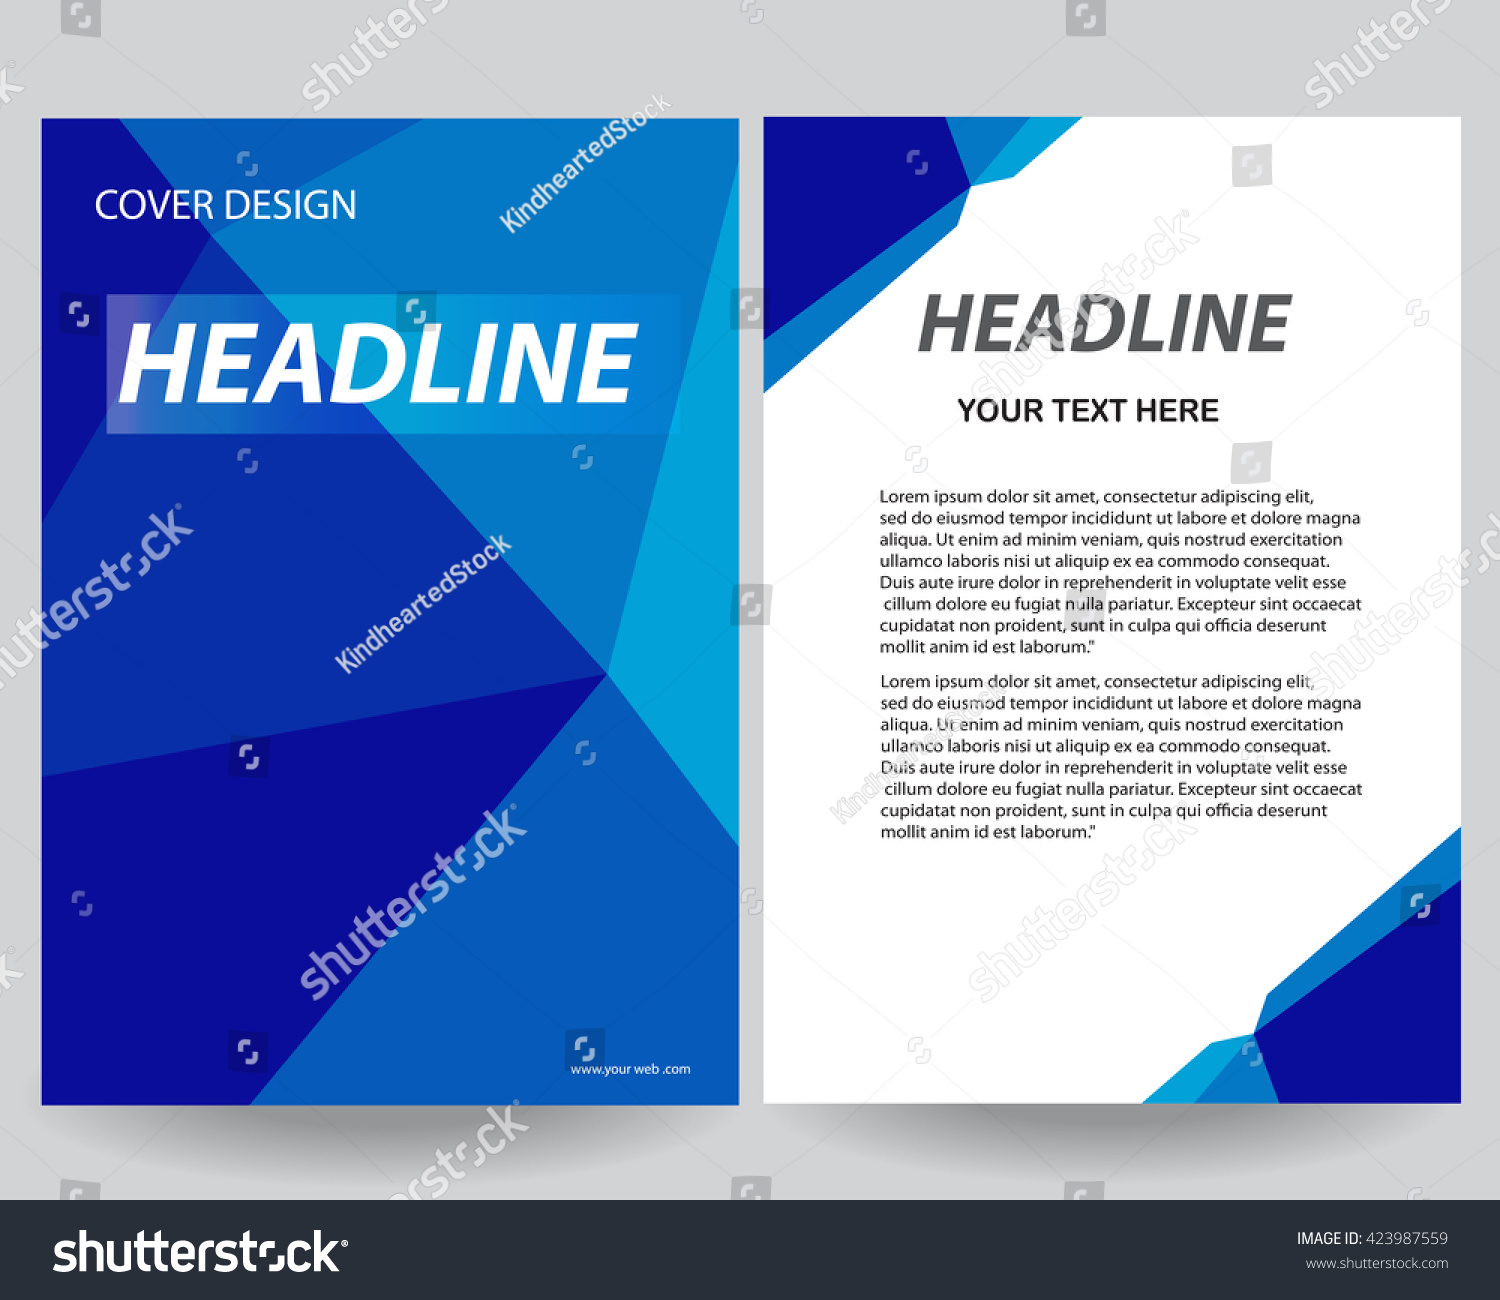 abstract flyers brochure annual report design templates template abstract flyers brochure annual report design templates template flyer design portfolio background